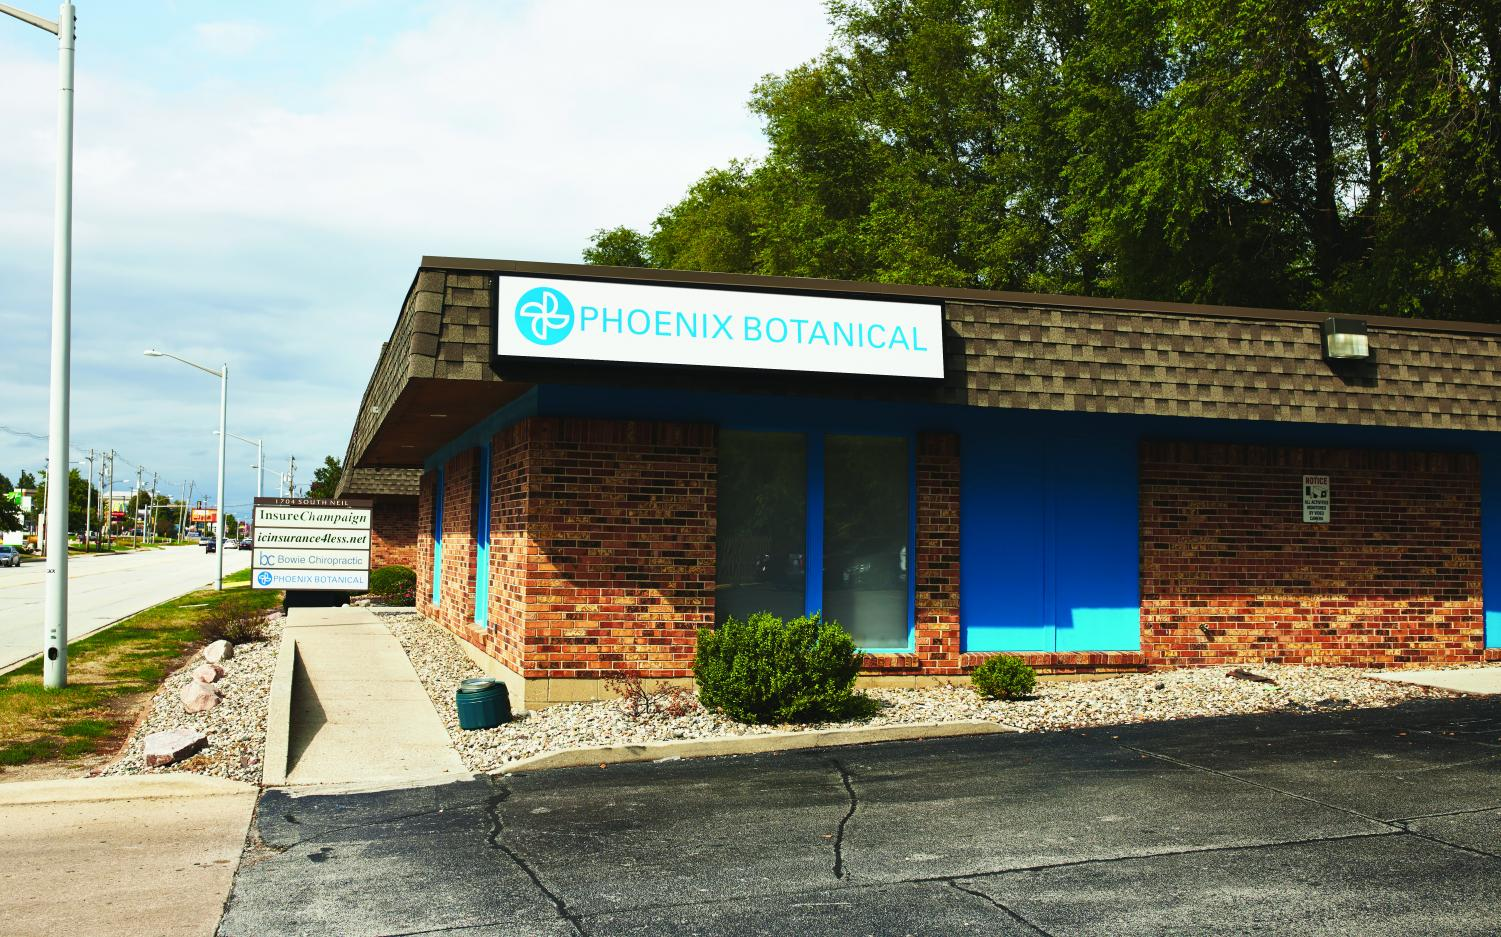 The front entrance to Phoenix Botanical, which stands at 1704 S. Neil St., a marijuana dispensary located in Champaign. House Bill 1438, passed in Illinois on May 31, states anyone 21 or older can possess, purchase and use limited amounts of cannabis starting Jan. 1, 2020.